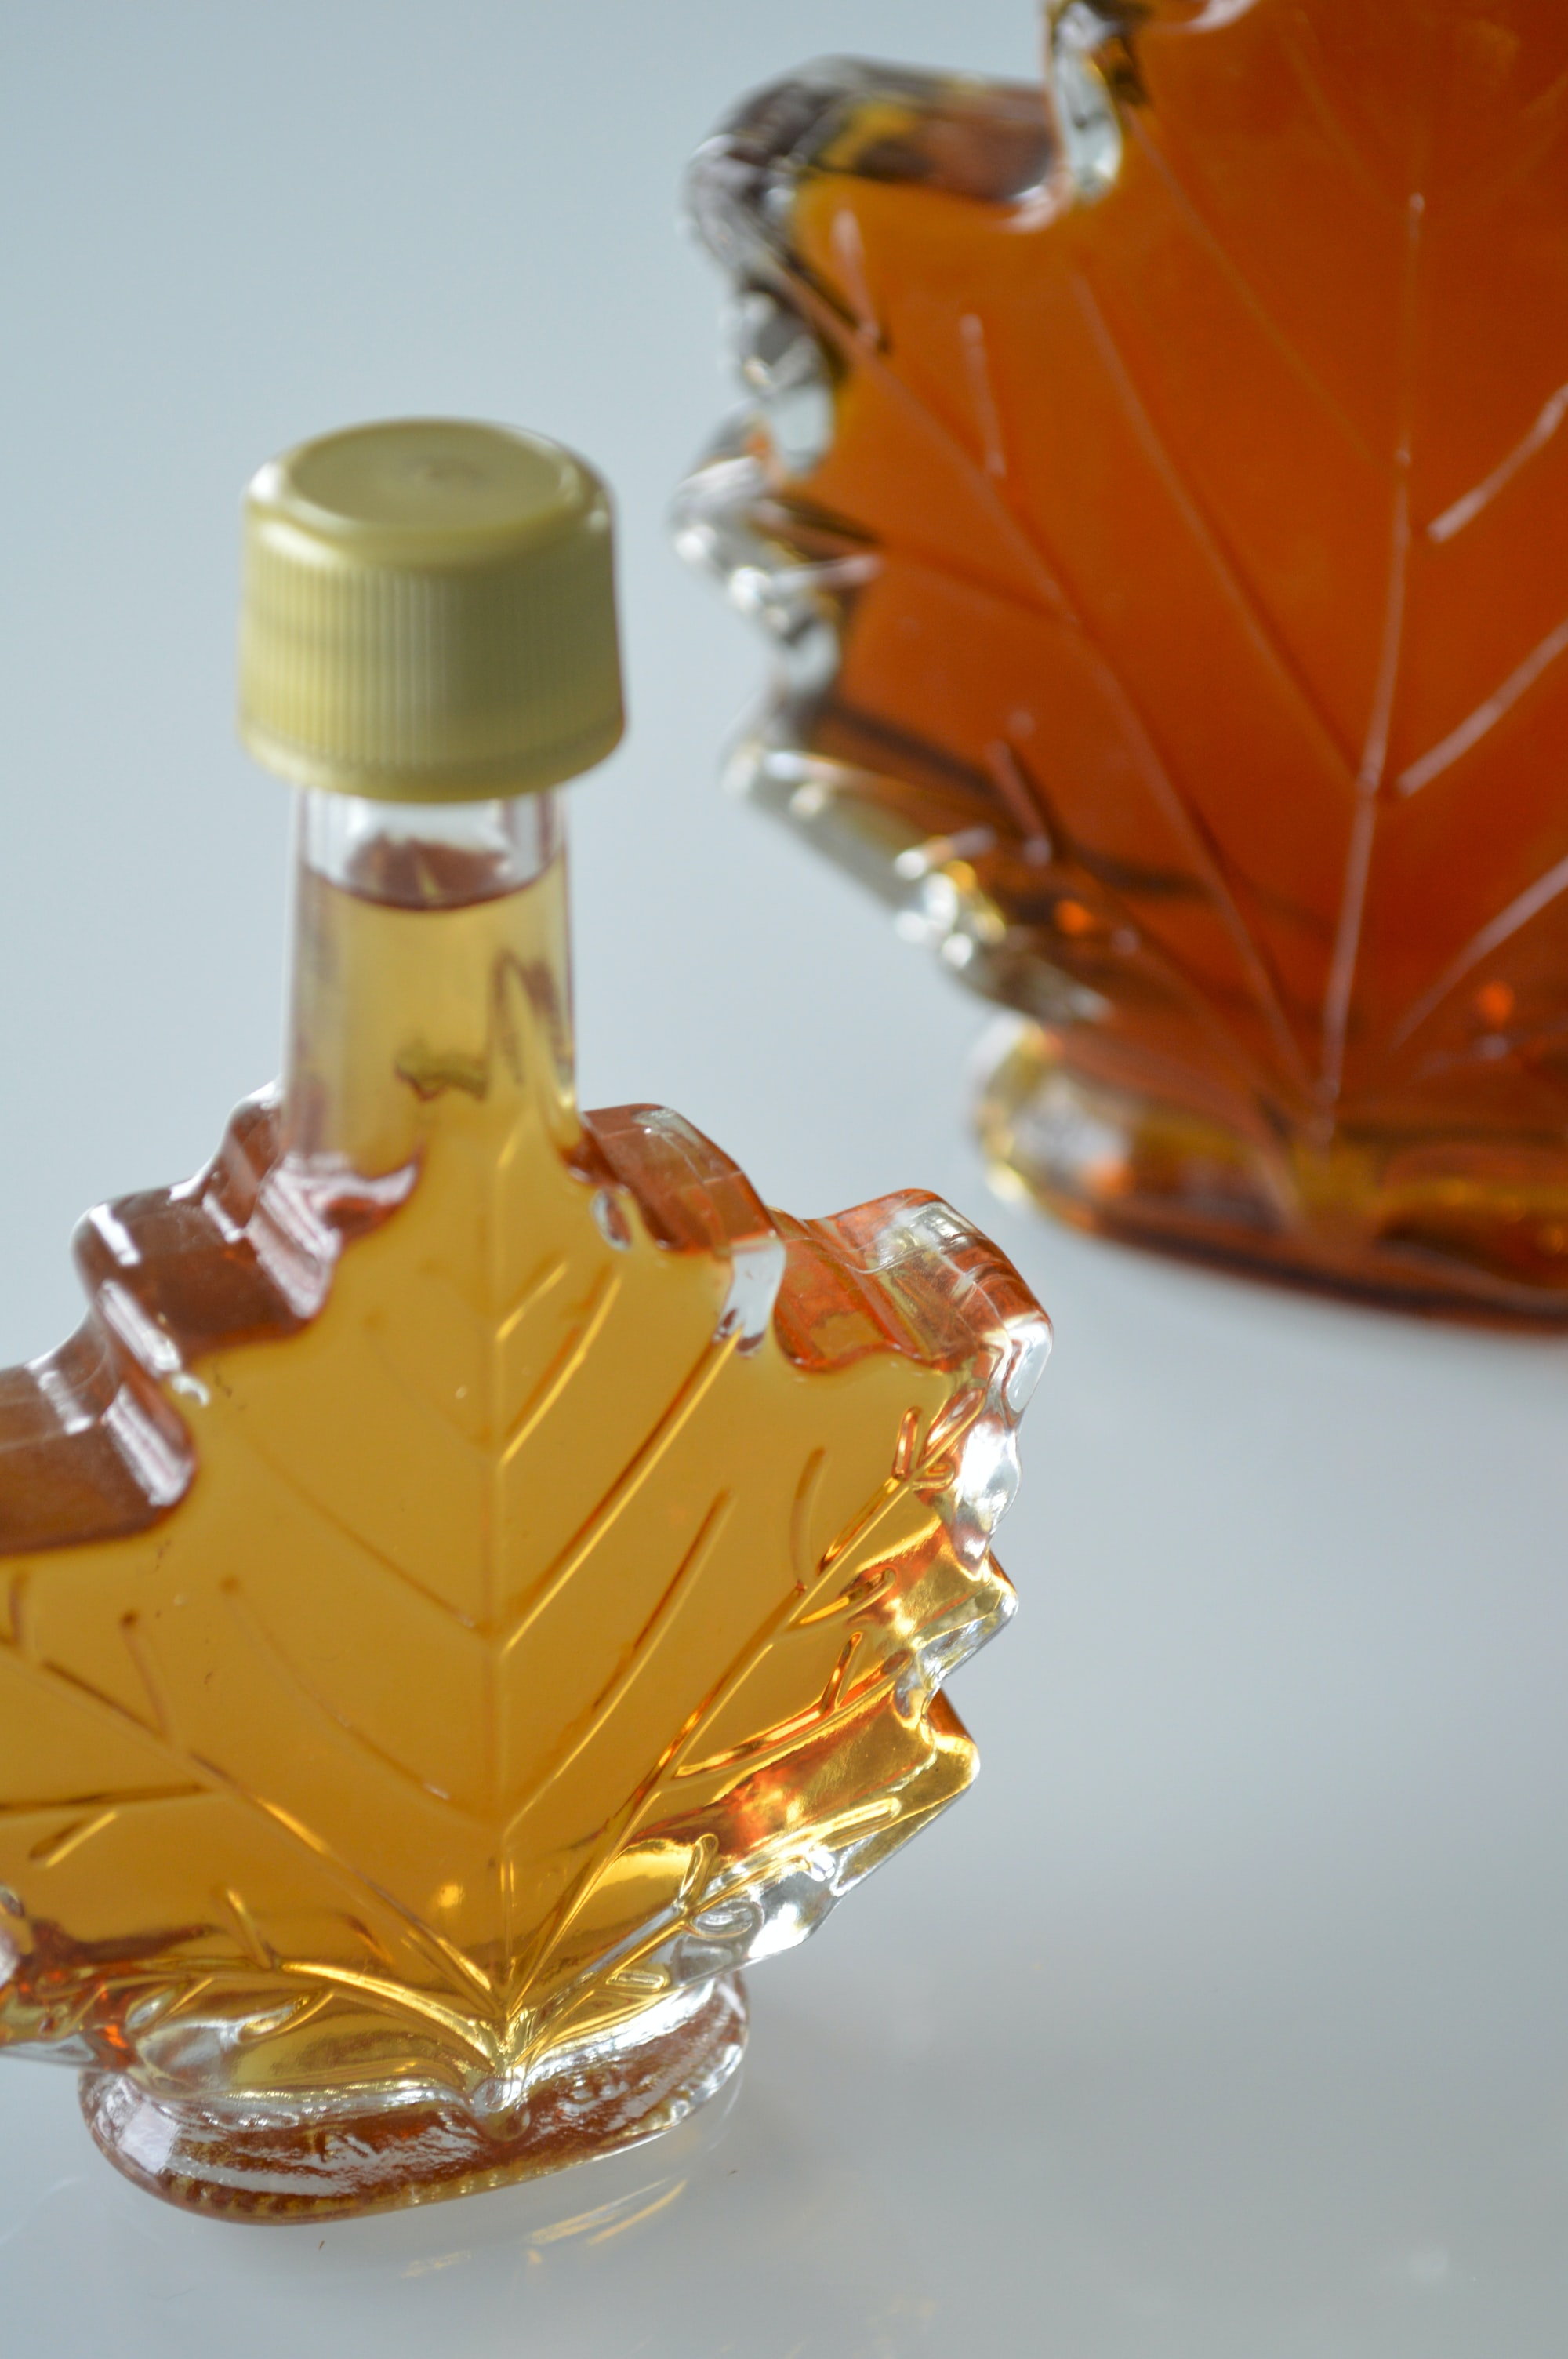 Maple syrup in a bottle on a table